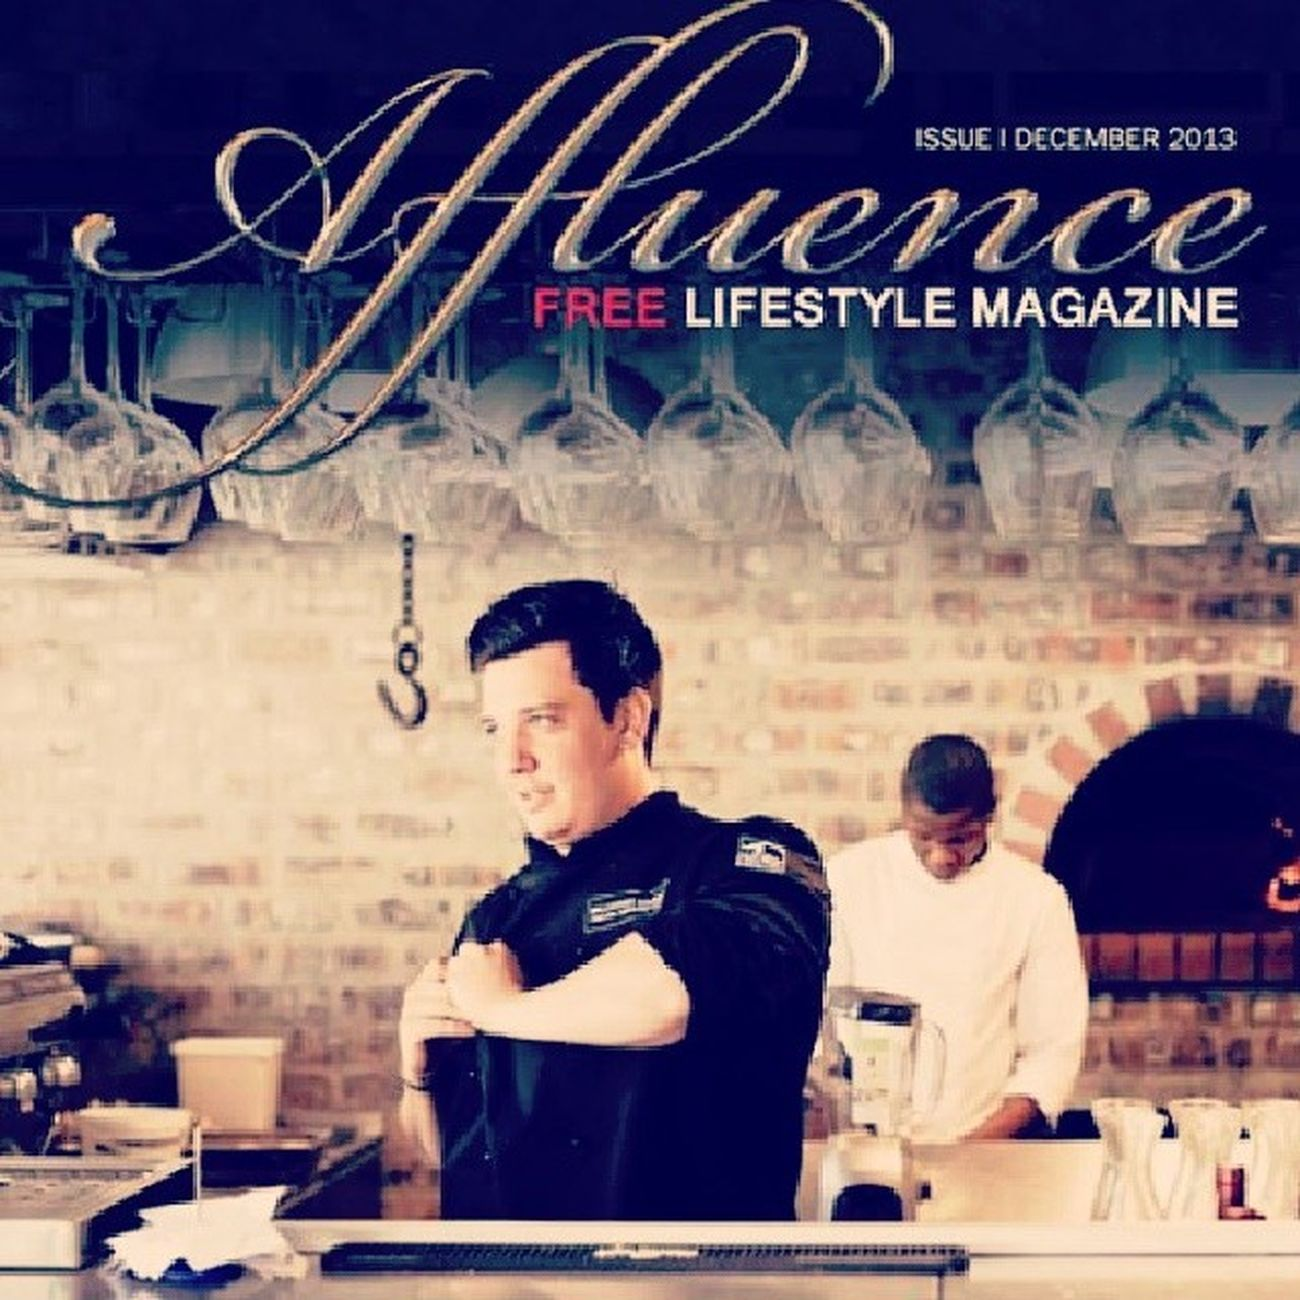 Our new magazine launch!!! Exited  Happy Amped HardWorkPaysOff chef lovemyjob